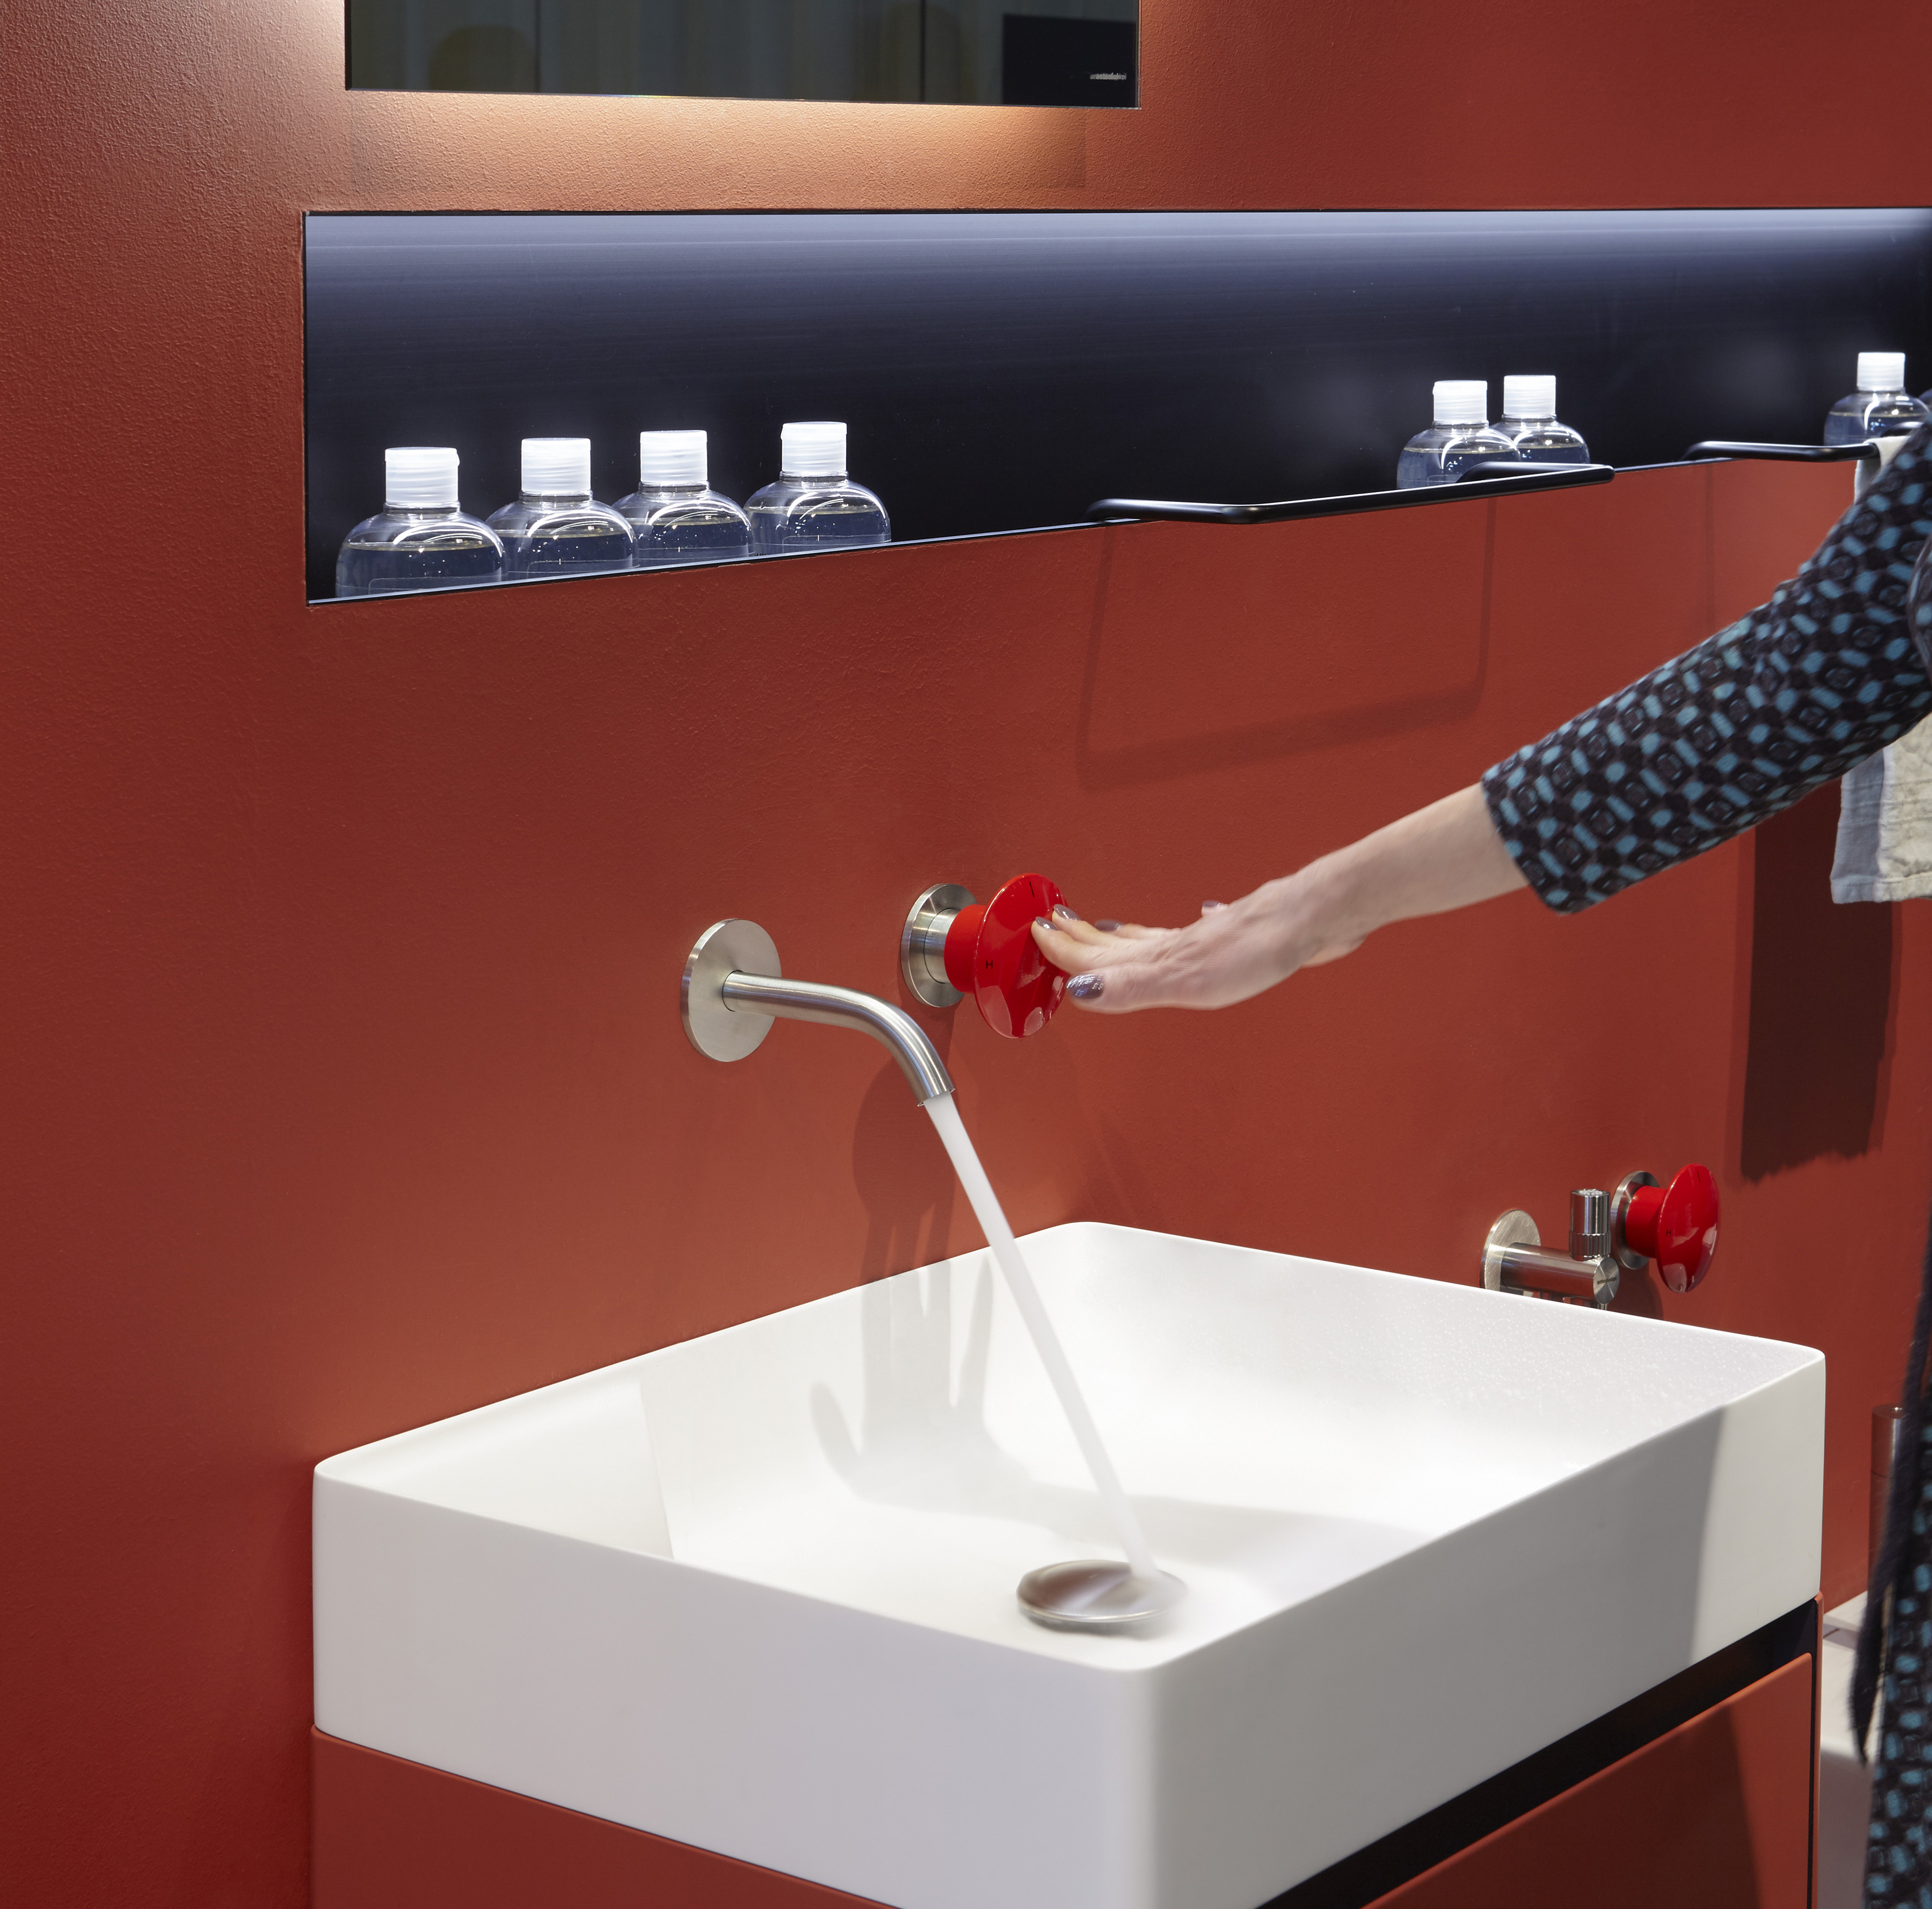 Italienisches Baddesign Tired Of Boring Faucets 10 Innovative Options To Consider